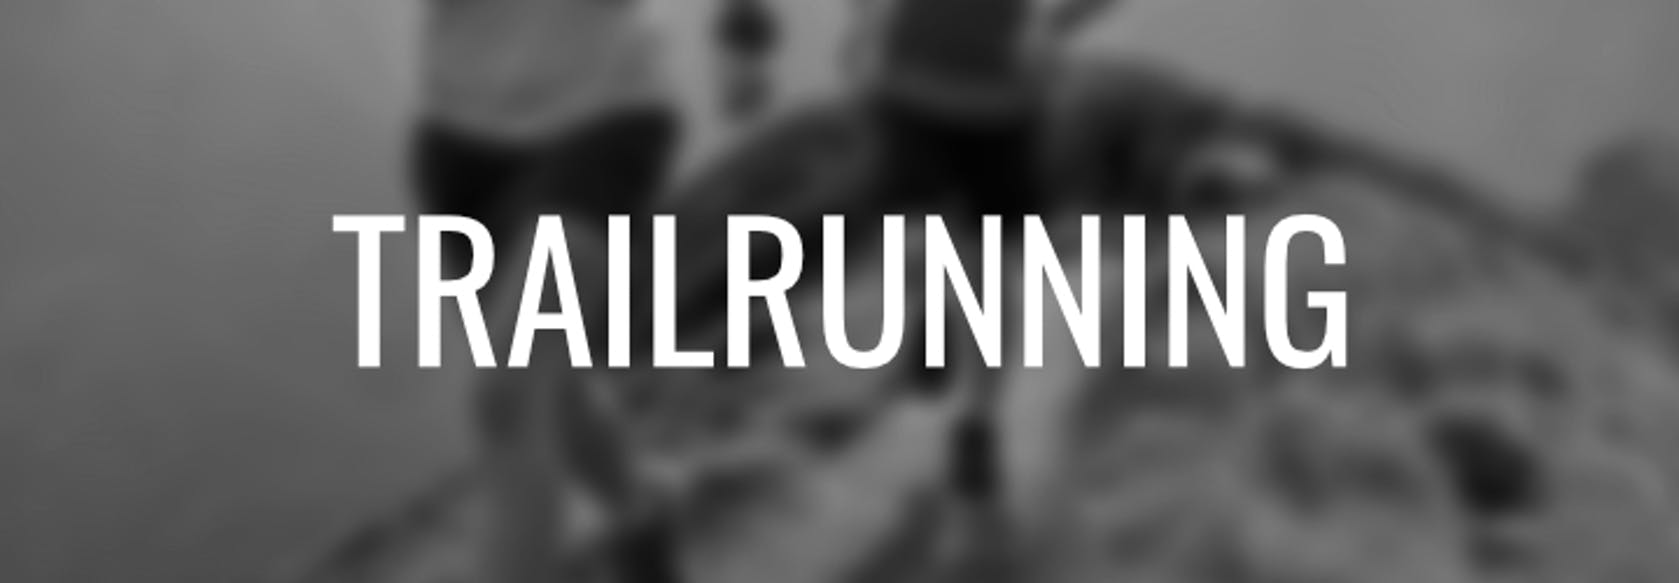 Trailrunning onlineshop